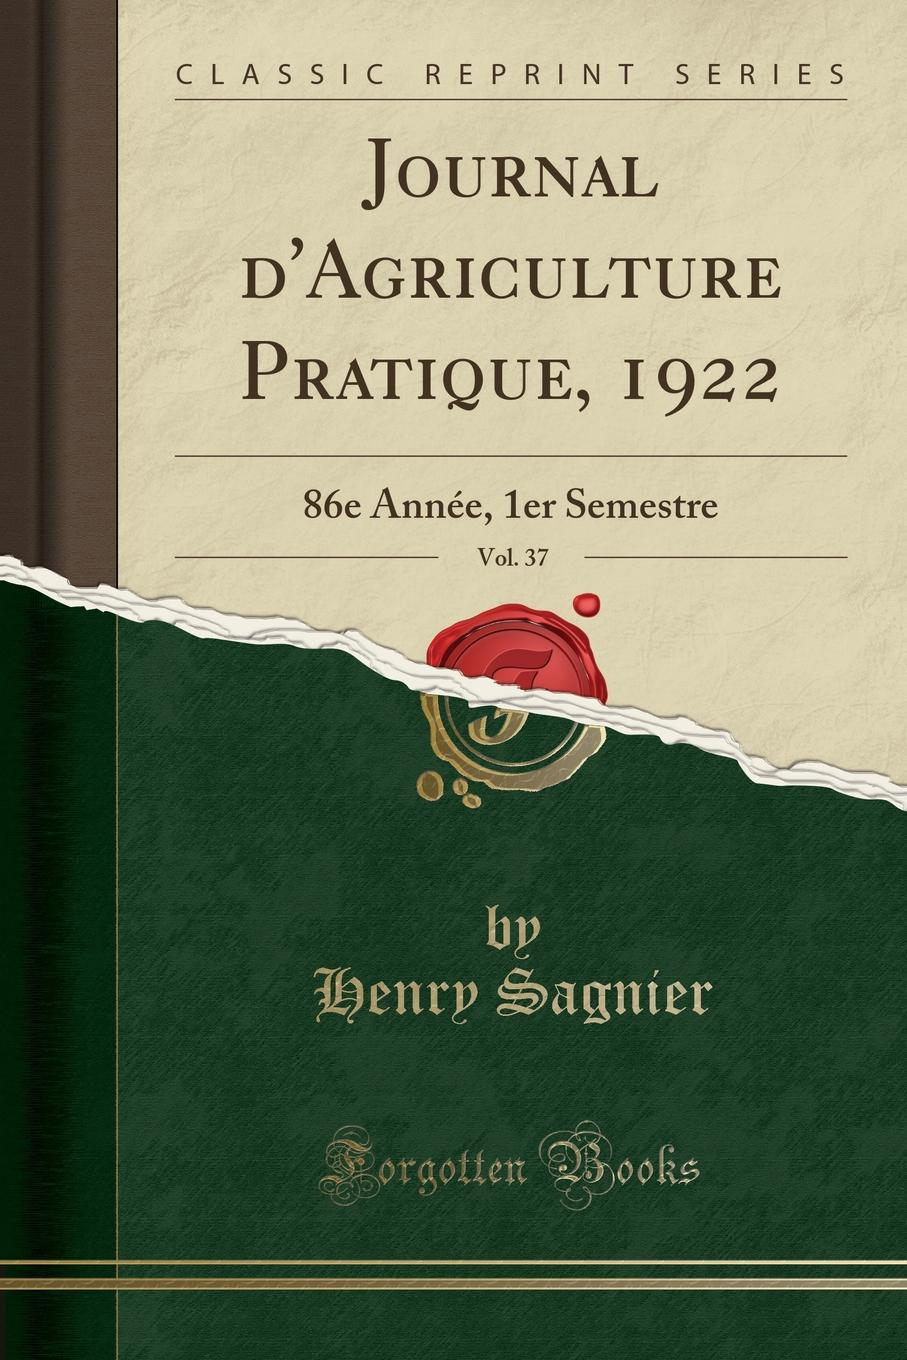 Journal d.Agriculture Pratique, 1922, Vol. 37. 86e Annee, 1er Semestre (Classic Reprint) Excerpt from Journal d'Agriculture Pratique 1922, 37:...